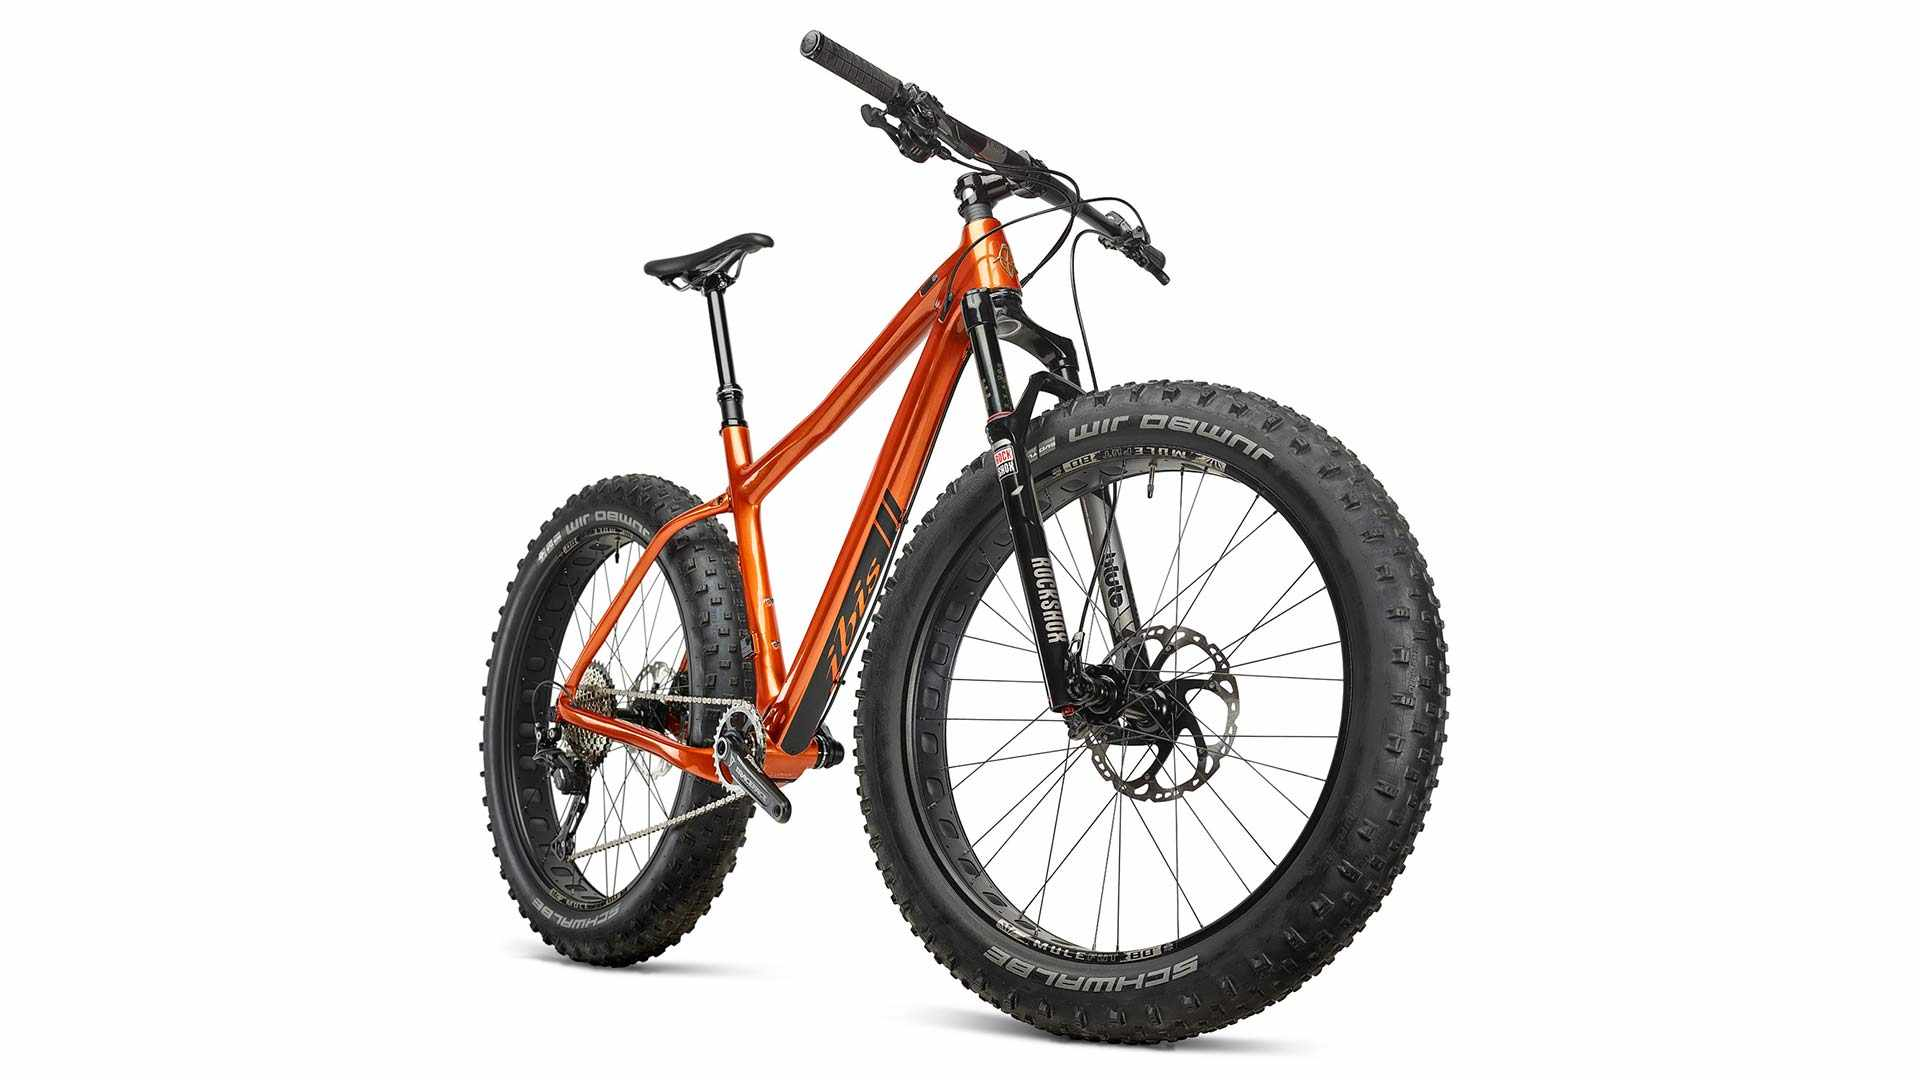 The complete Trans Fat arrives with a Rockshox Bluto fork and Shimano XT 1x transmission